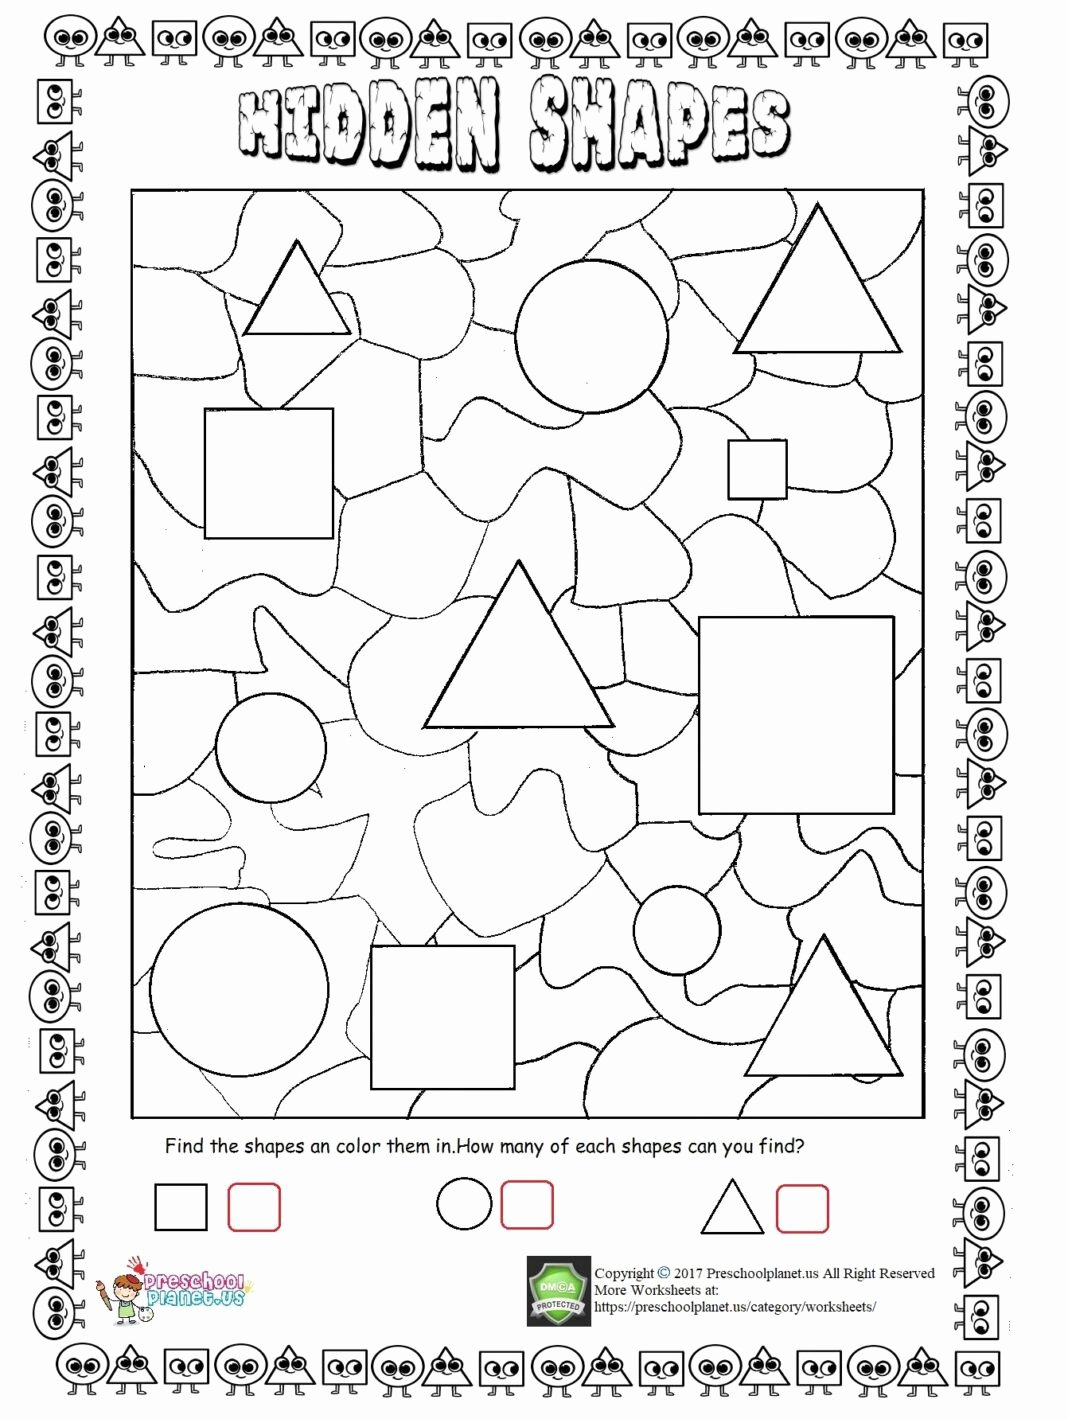 Car Worksheets for Preschoolers Awesome Preschool Matching Worksheets Pdf – Kingandsullivan